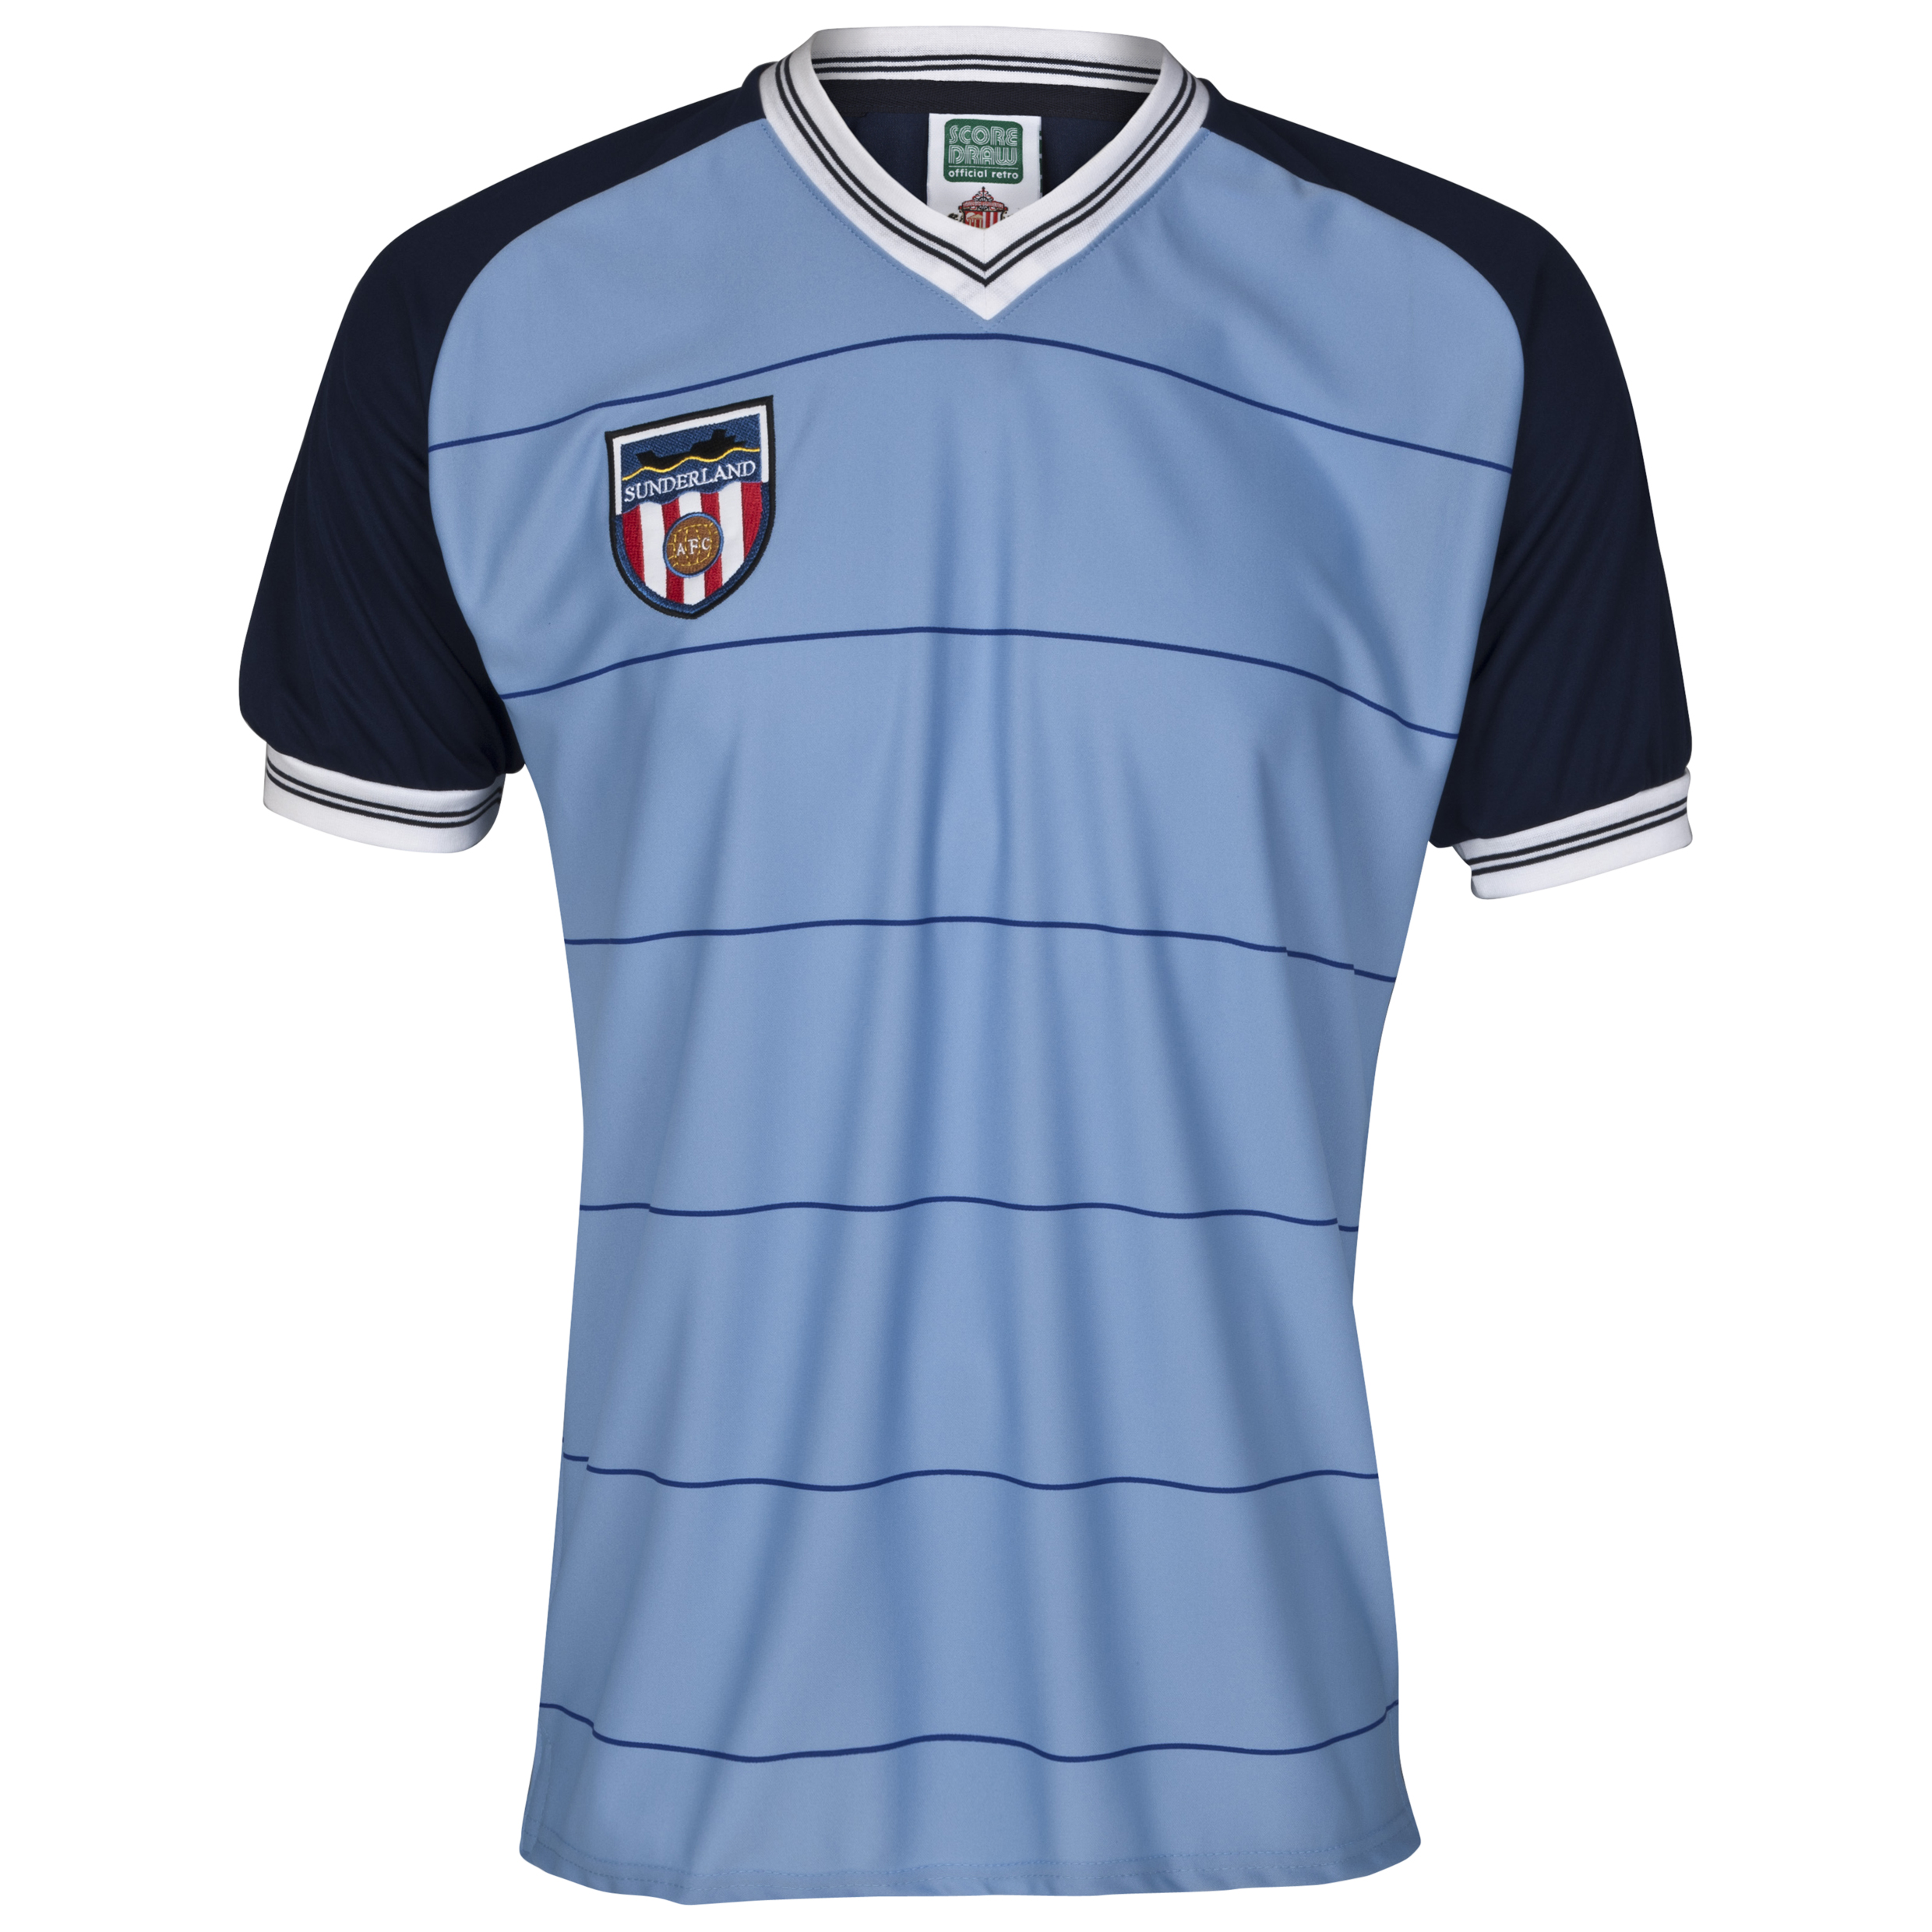 Buy Sunderland 1984 Away Kit